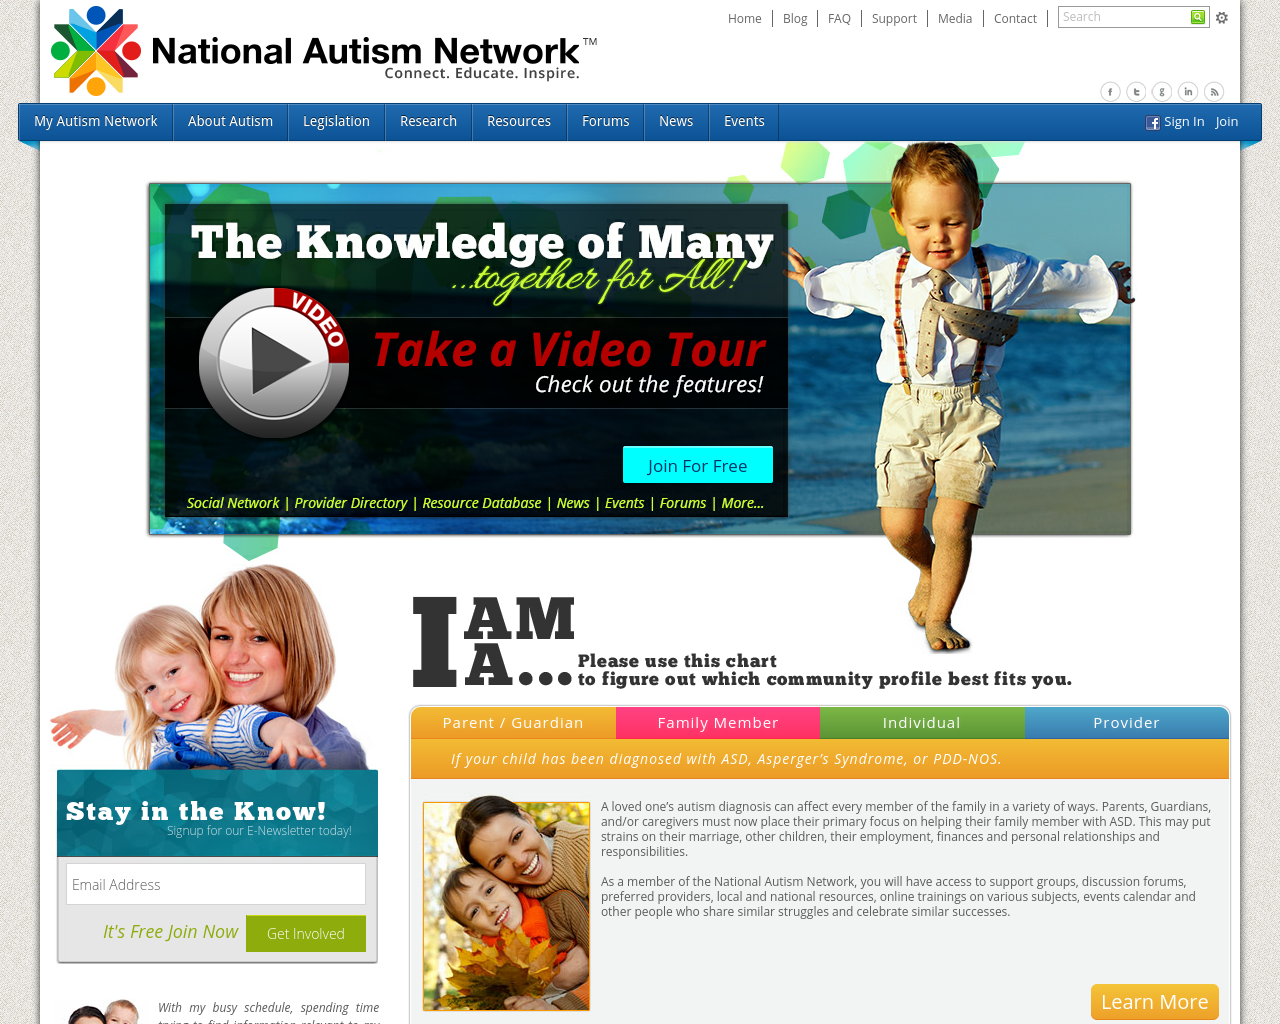 National-Autism-Network-Advertising-Reviews-Pricing